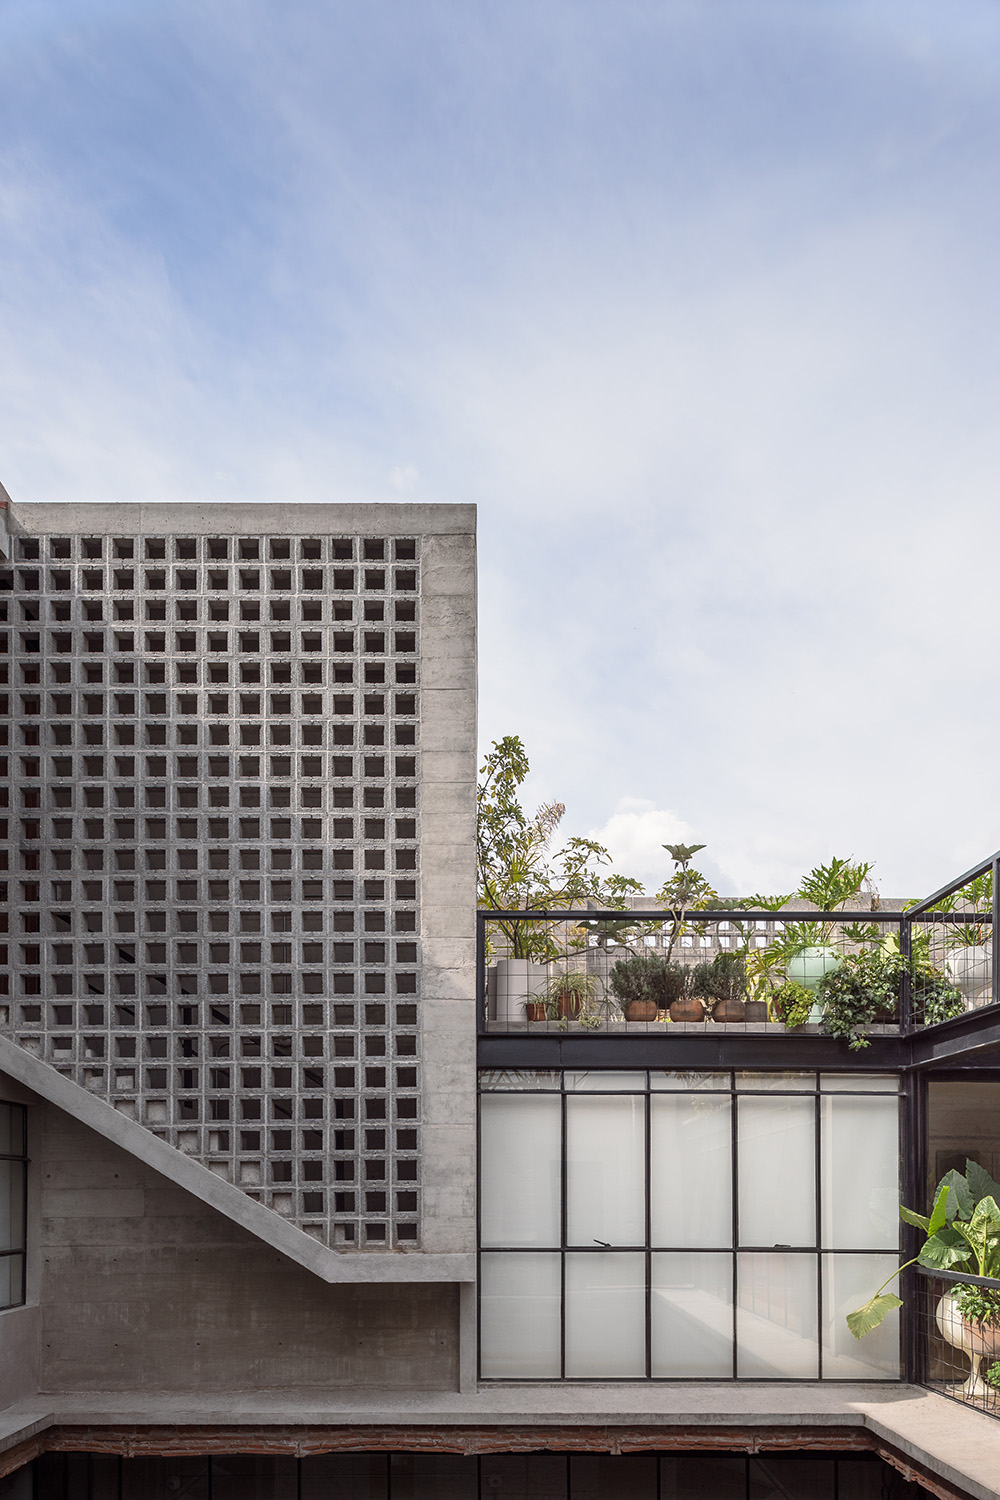 A perforated concrete prism, protrudes from the patio's façade Luis Gallardo / LGM Studio